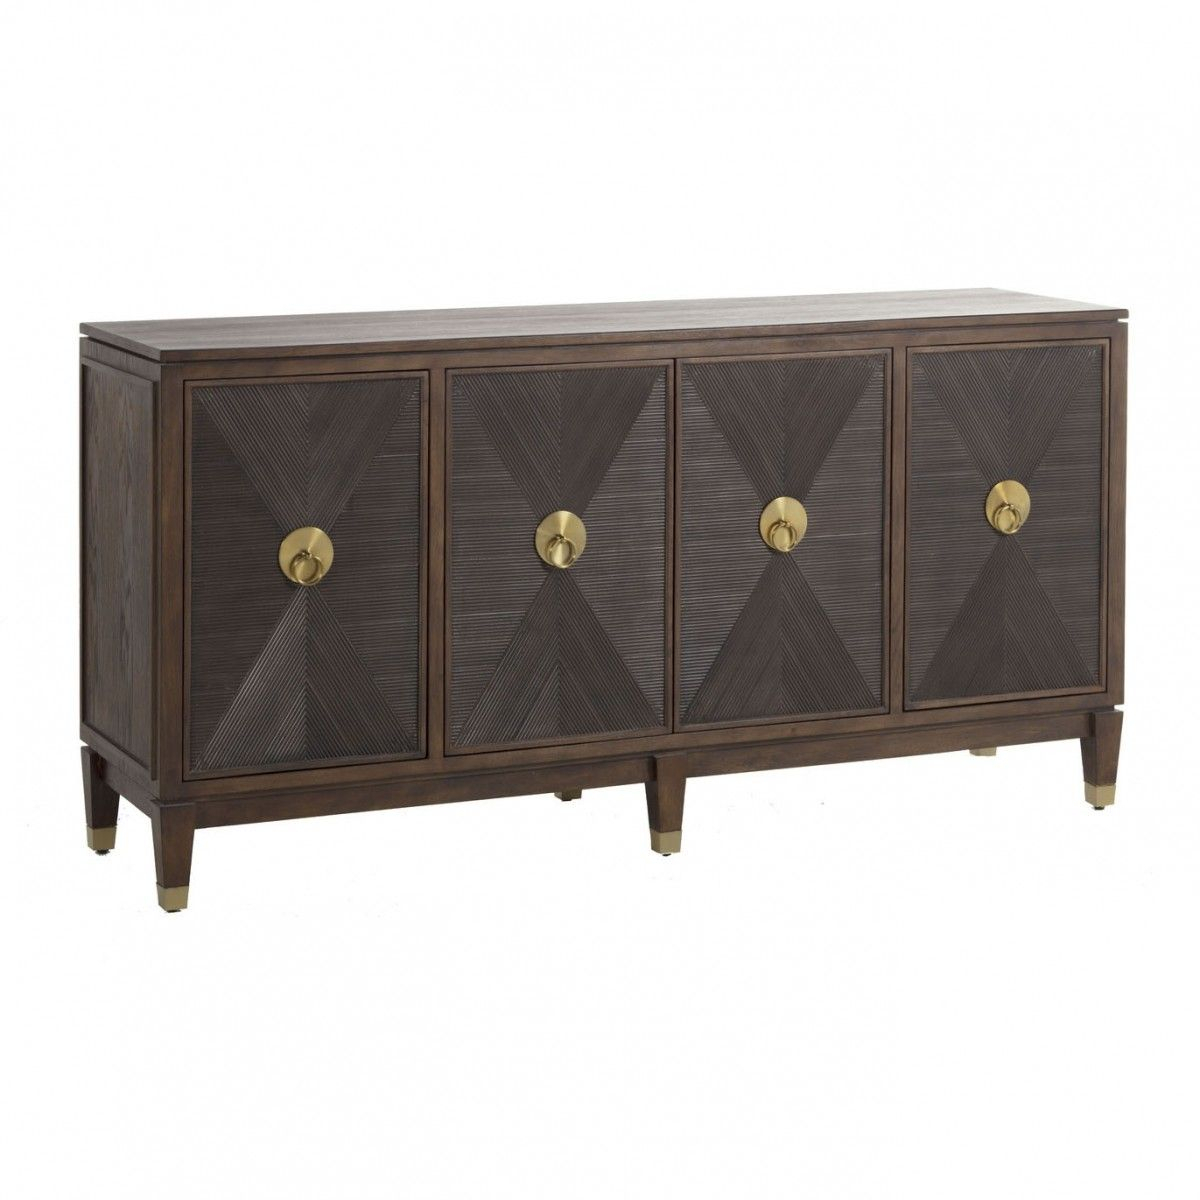 Gabby Saffron Cabinet In 2019 | Magazine Master Bedroom regarding Palisade Sideboards (Image 11 of 30)